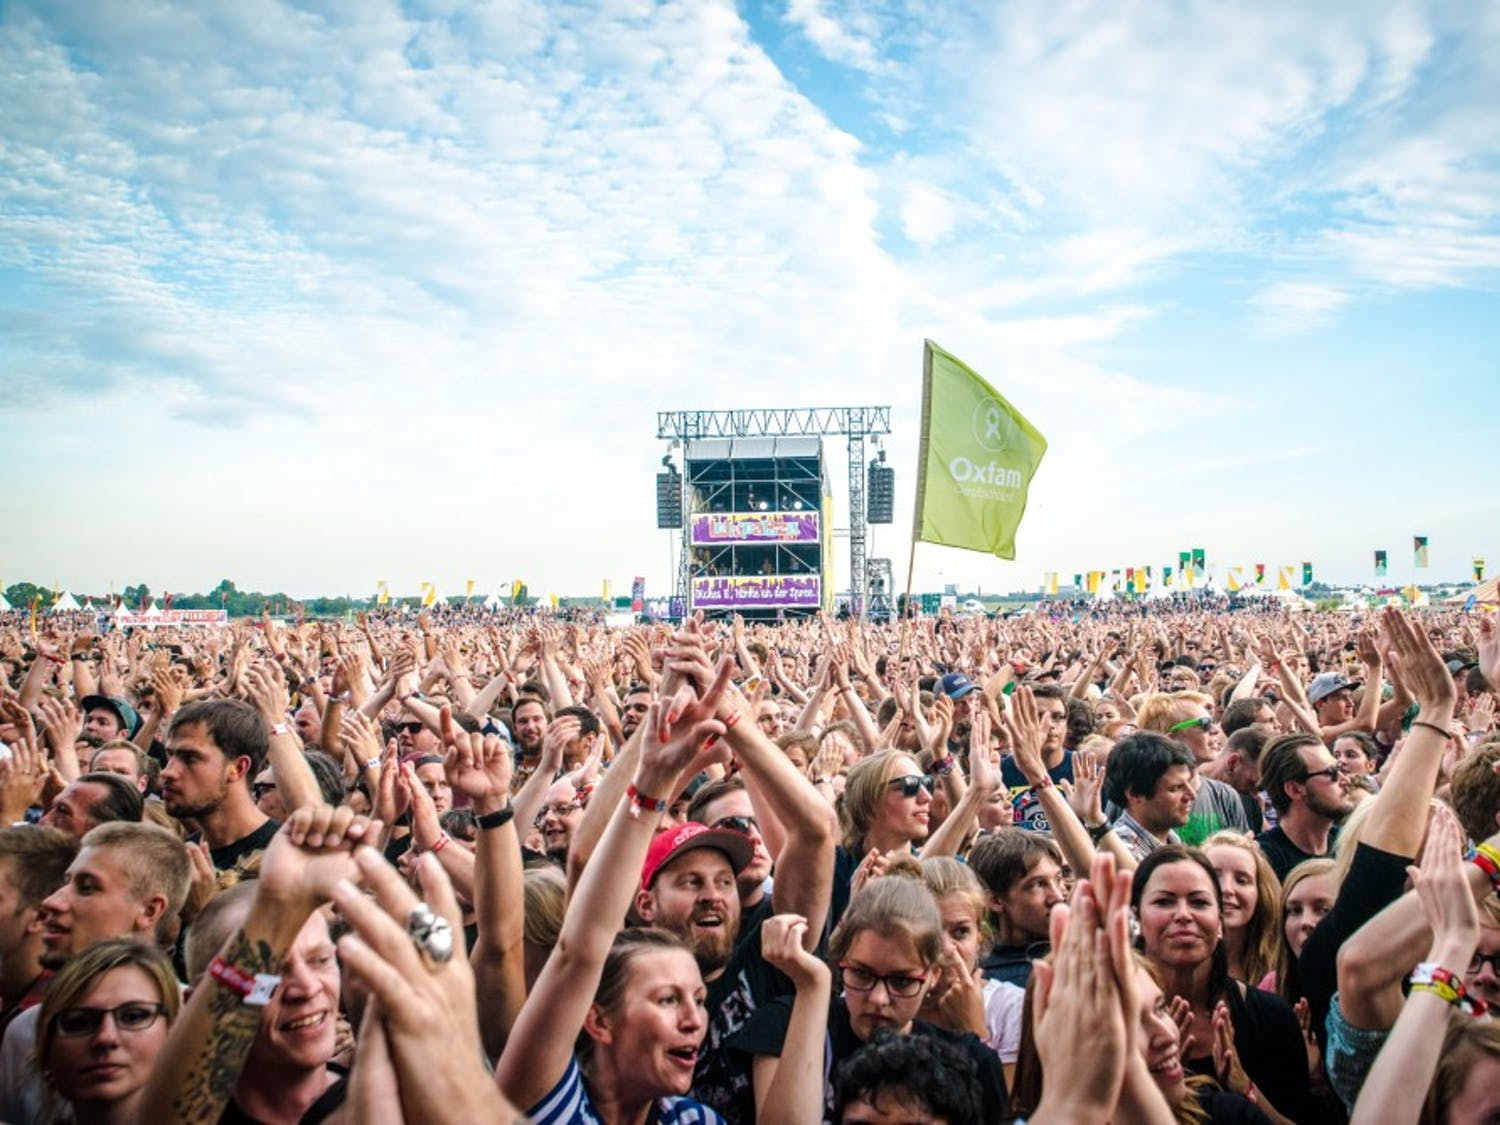 While Lollapalooza seems to be shying away from its roots as an Alt-Rock festival, it is still bringing in many outstanding artists likeThe Weekend, Arctic Monkeys, Travis Scott and Bruno Mars.